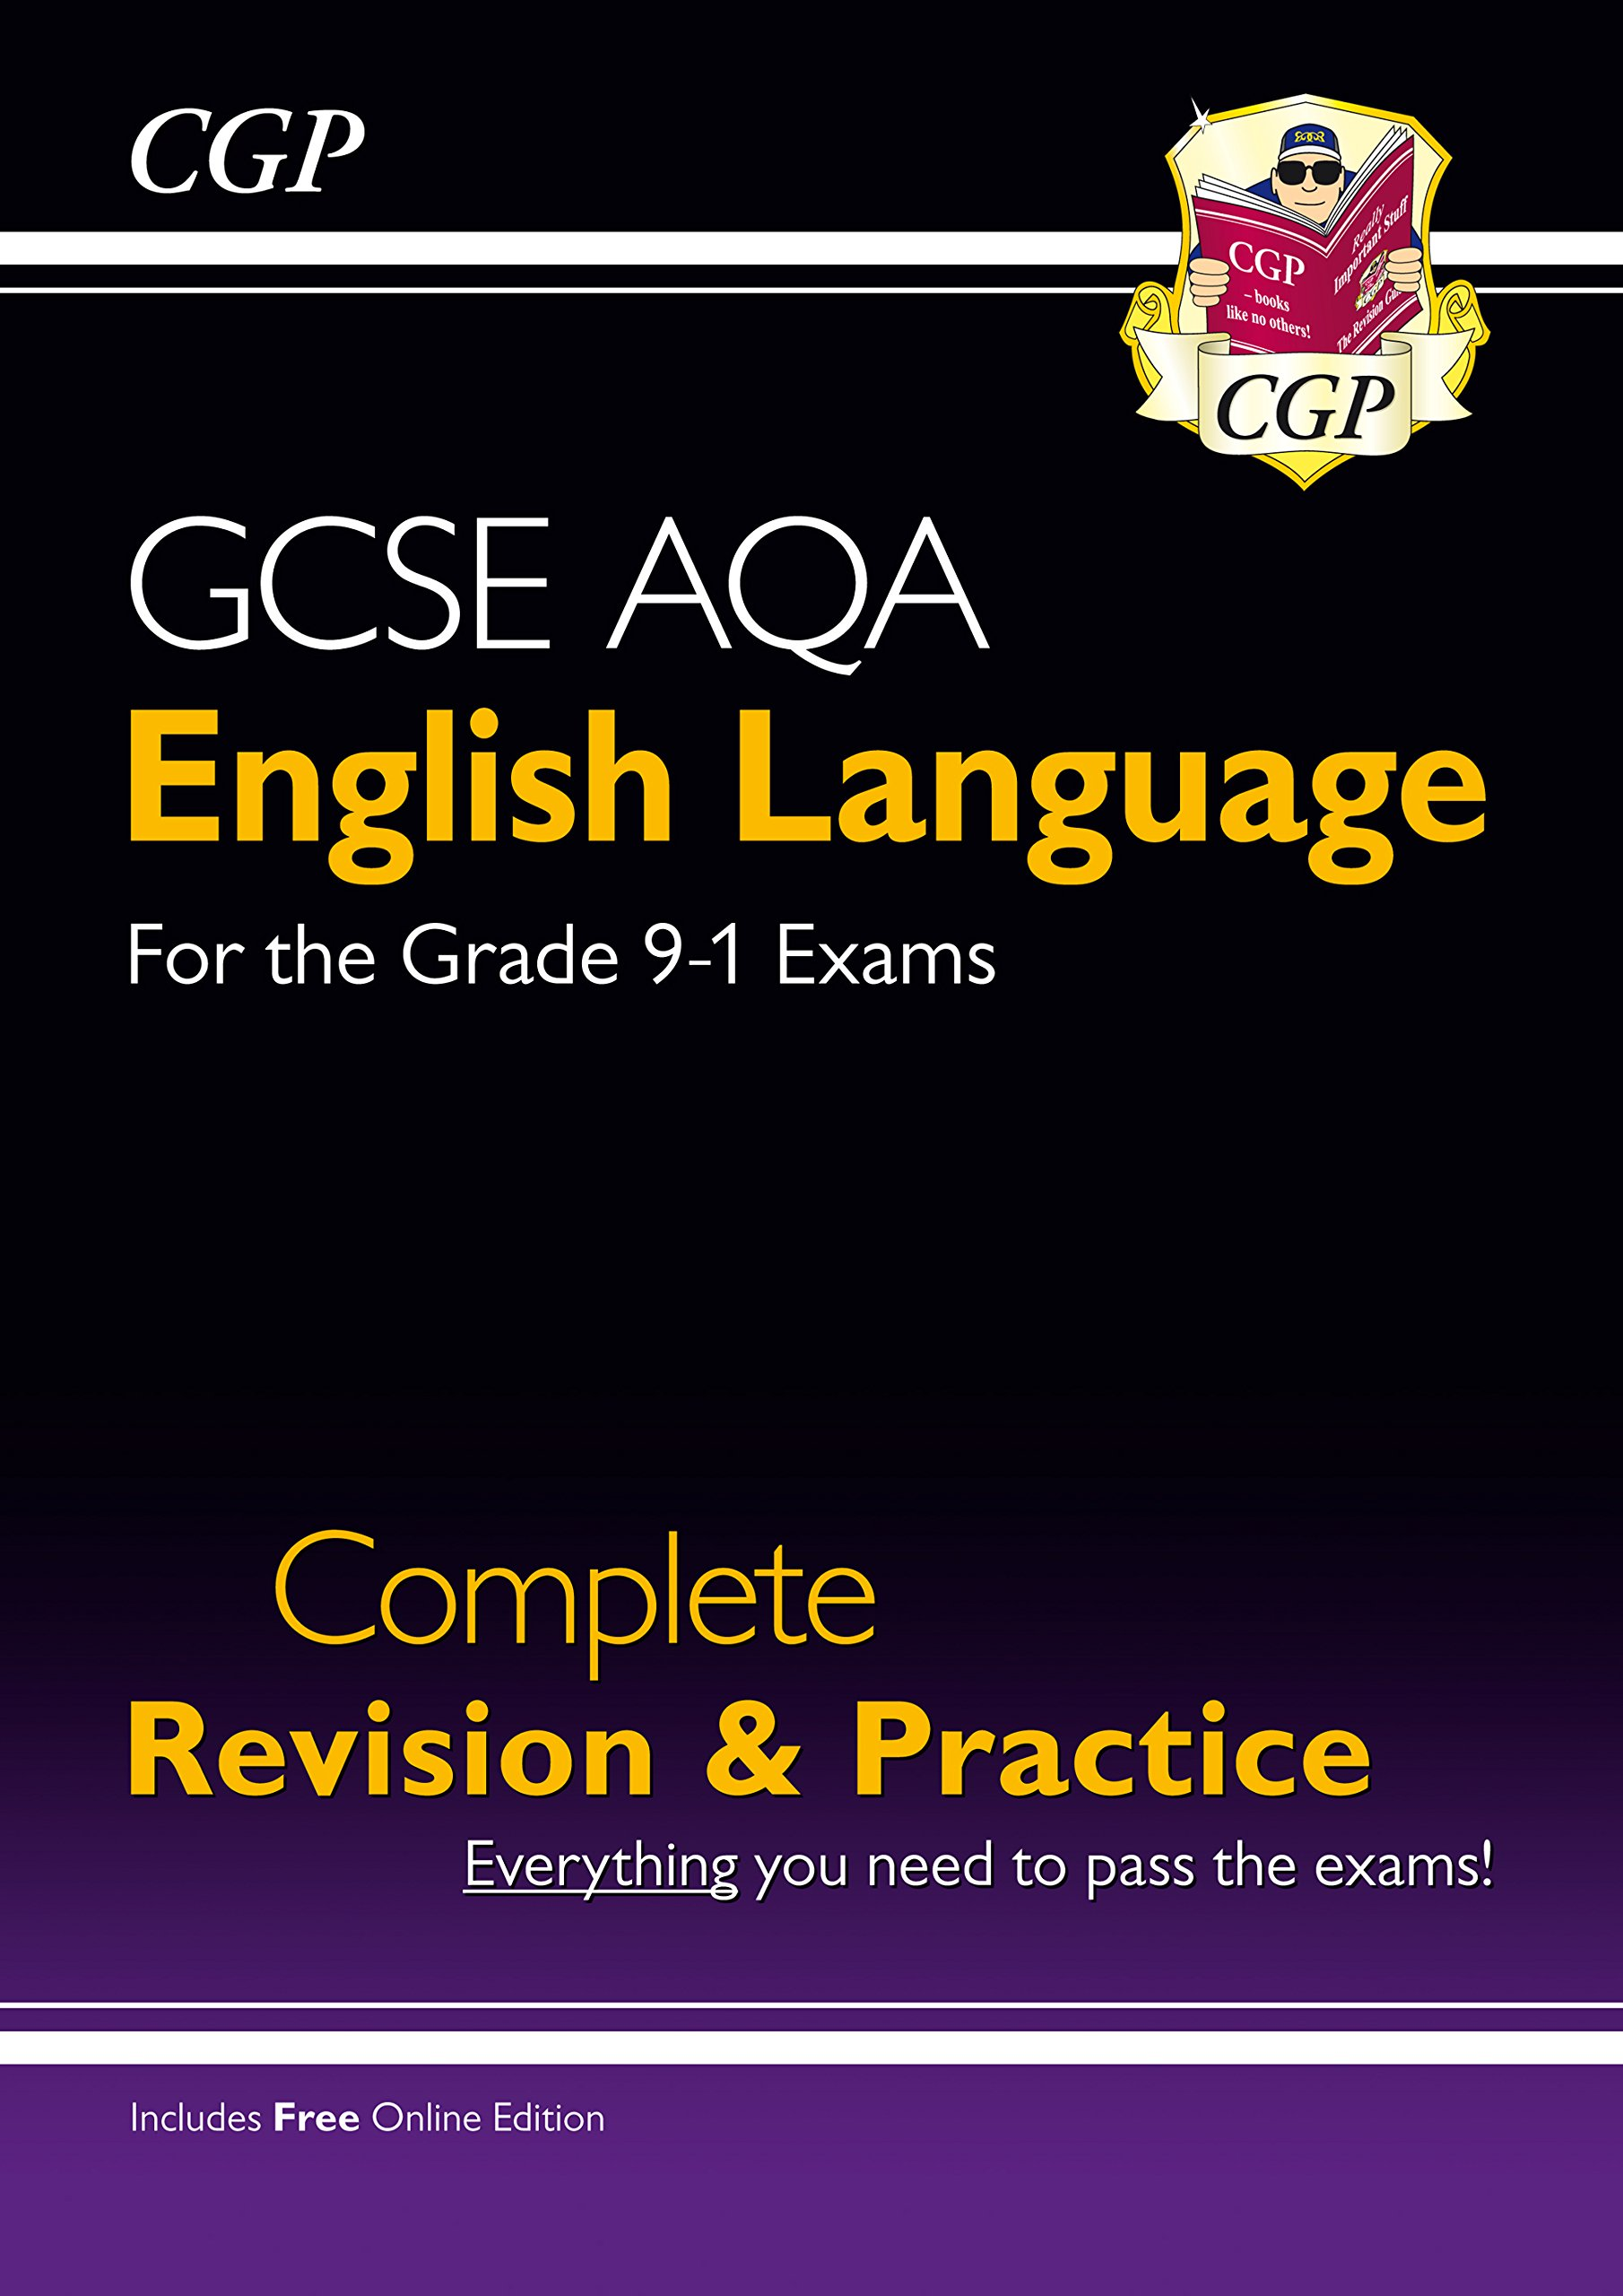 Gcse English Language Aqa Complete Revision Practice Grade 9 1